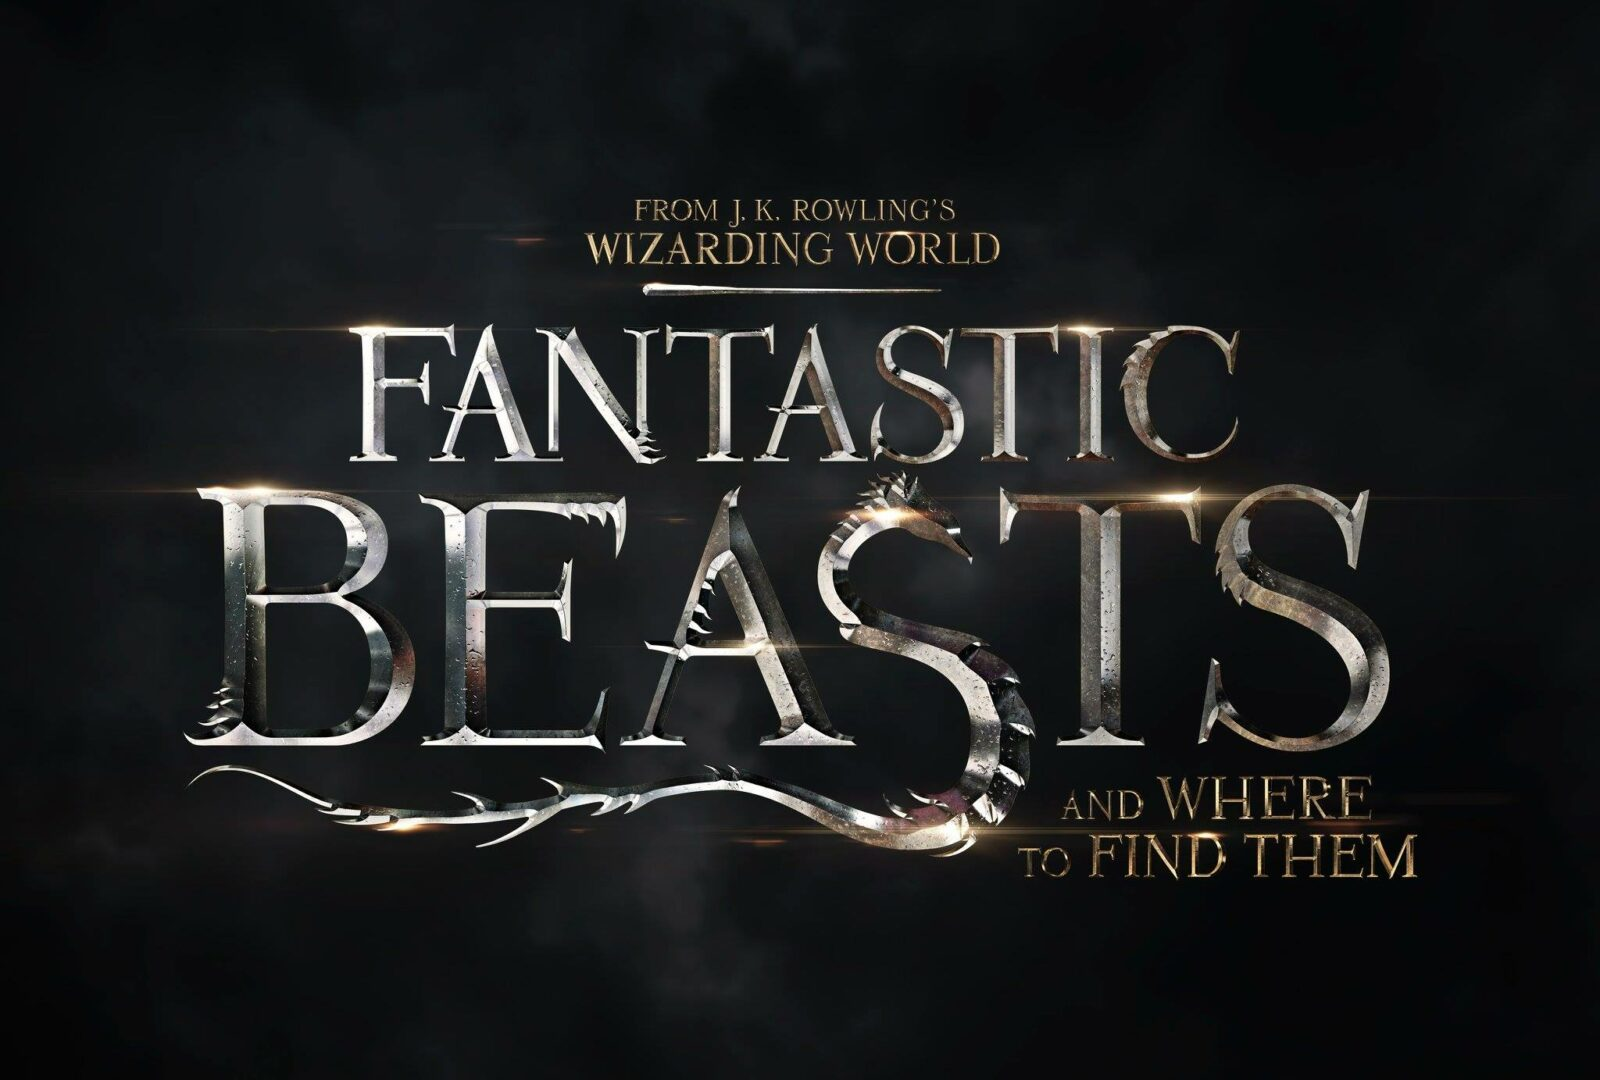 Is Fantastic Beasts just as Magical as Harry Potter?